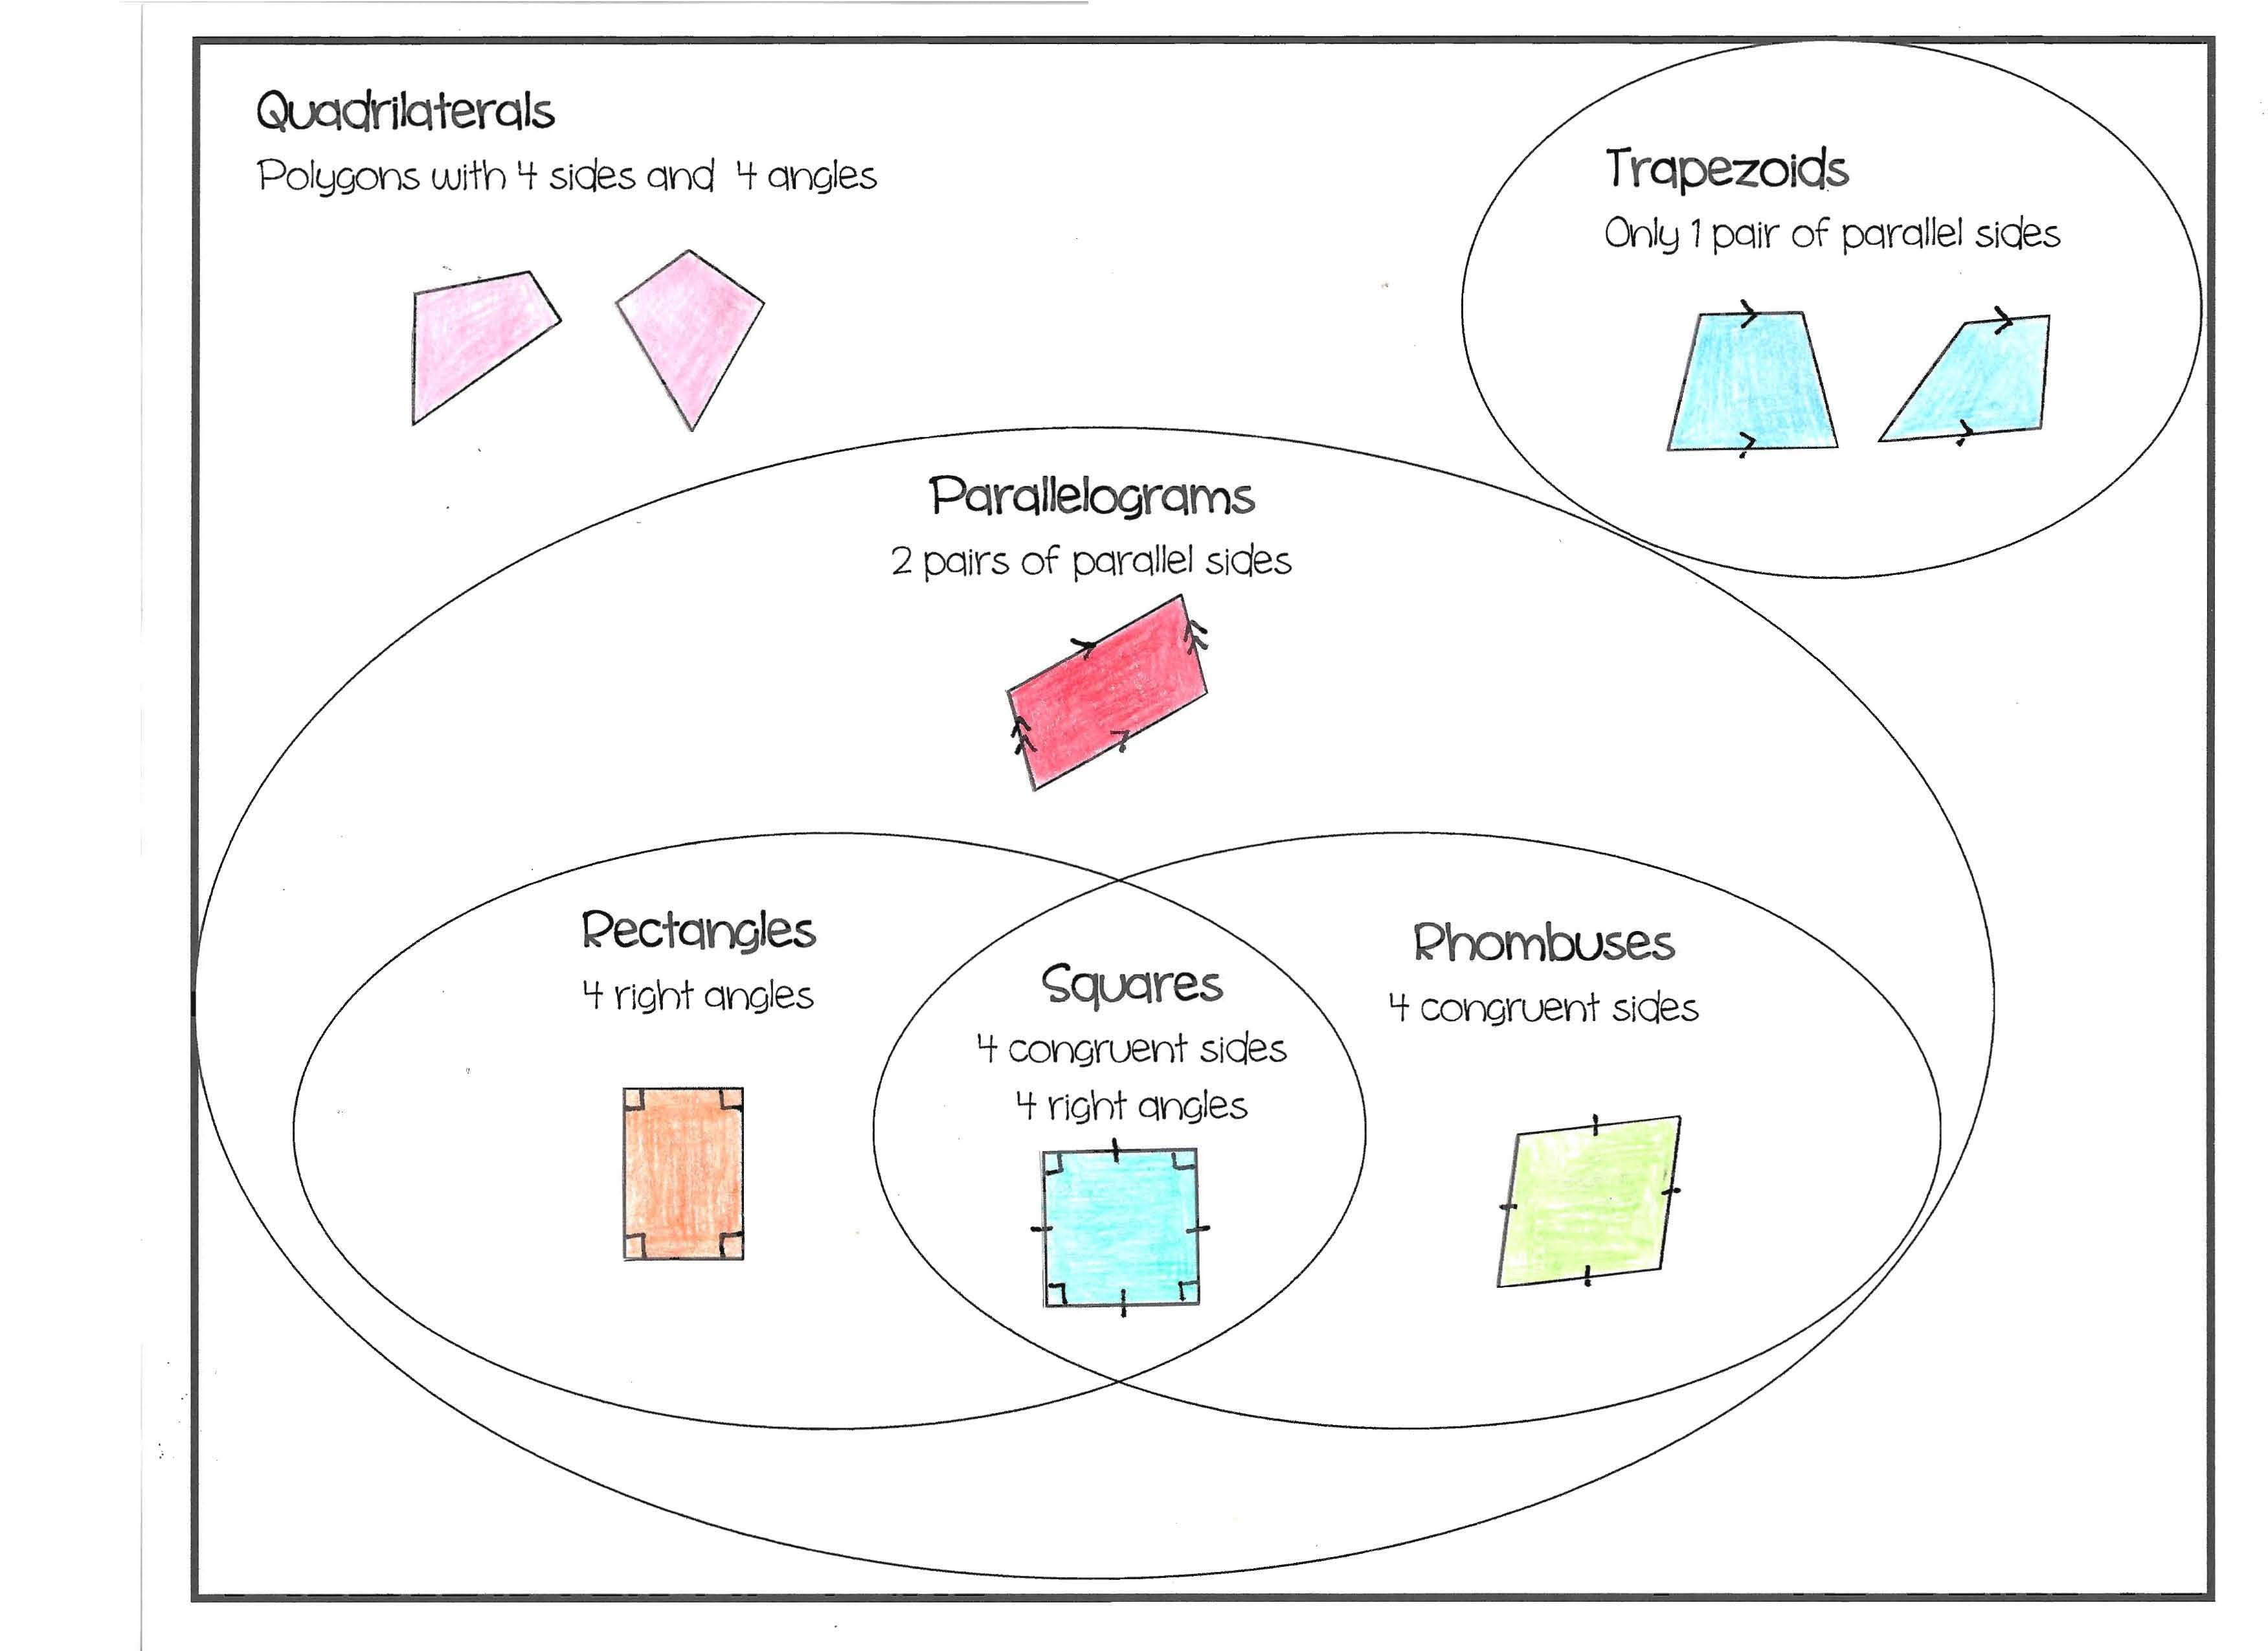 small resolution of Classifying Quadrilaterals - Lessons - Blendspace